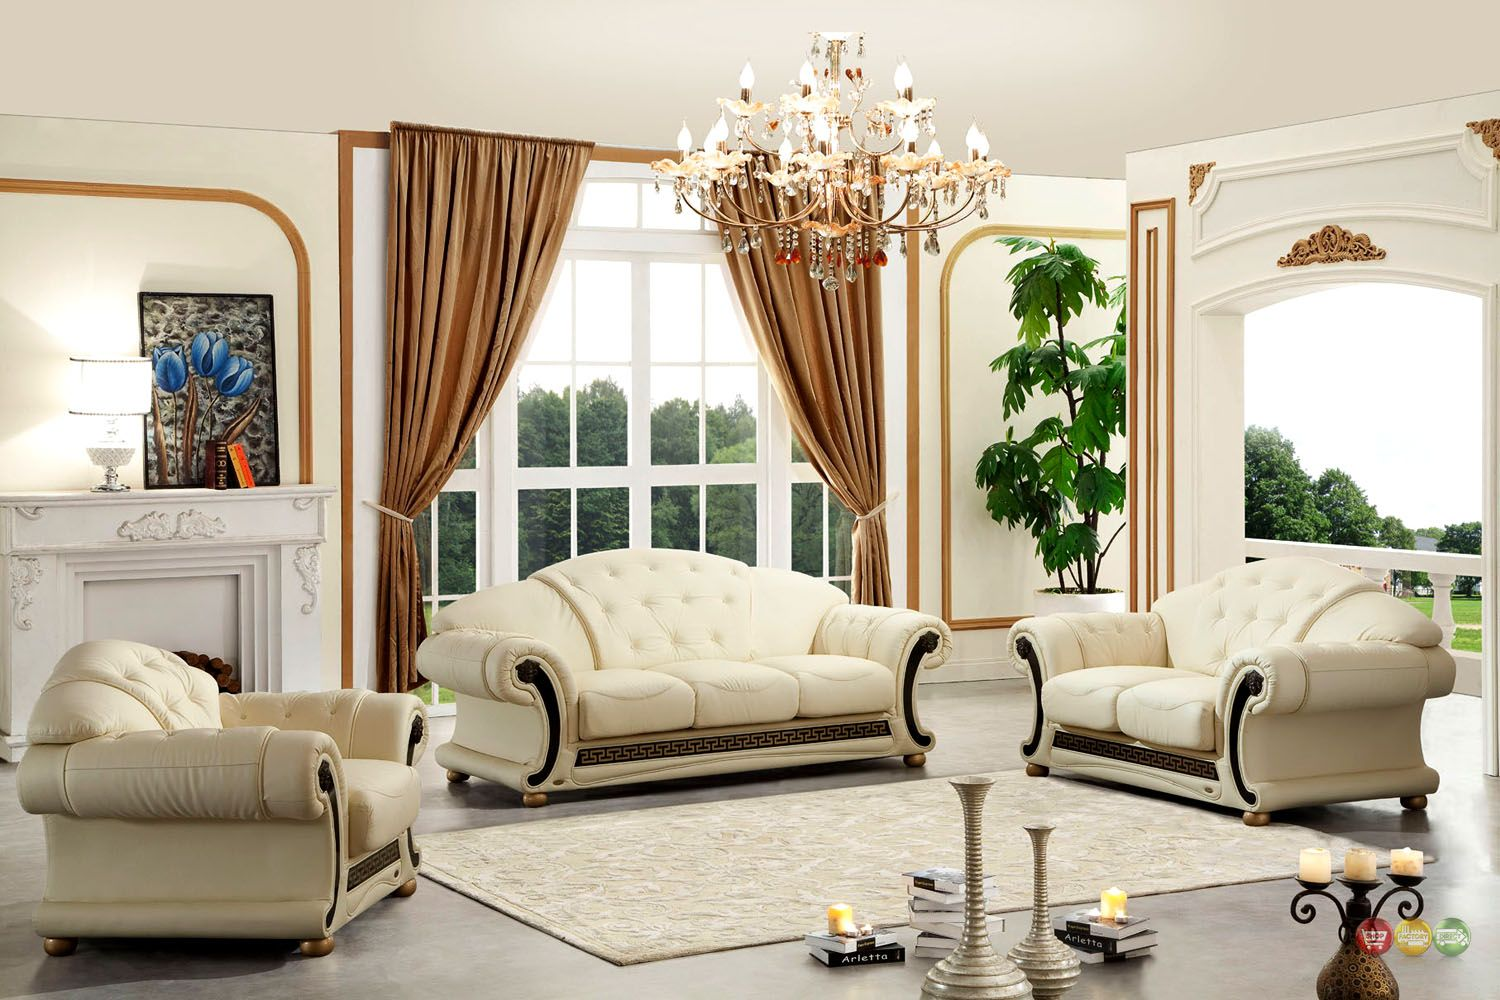 Versace cleopatra cream italian top grain leather beige living room sofa set home decor Living rooms with leather sofas